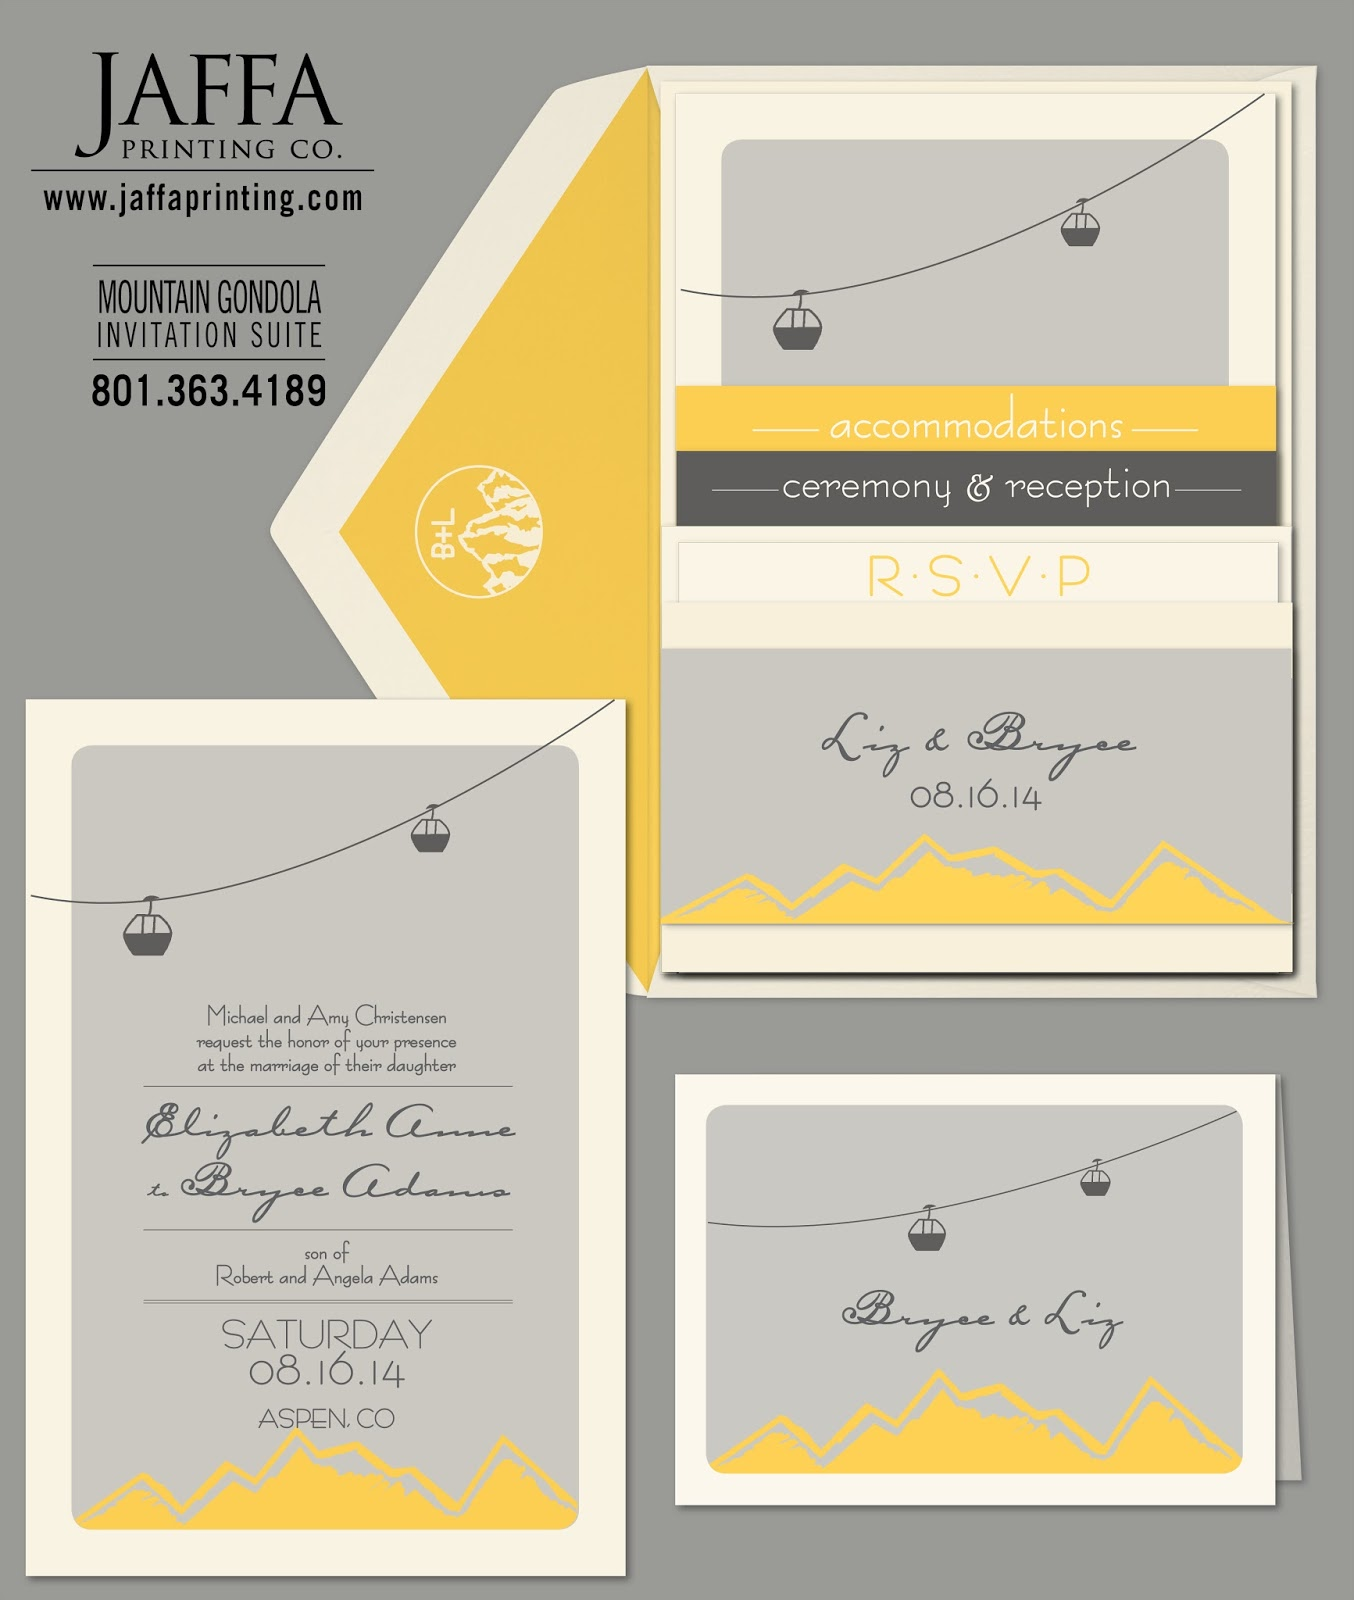 what time should you put on wedding invitations new invitation etiquette aeria press - What To Put On A Wedding Invitation